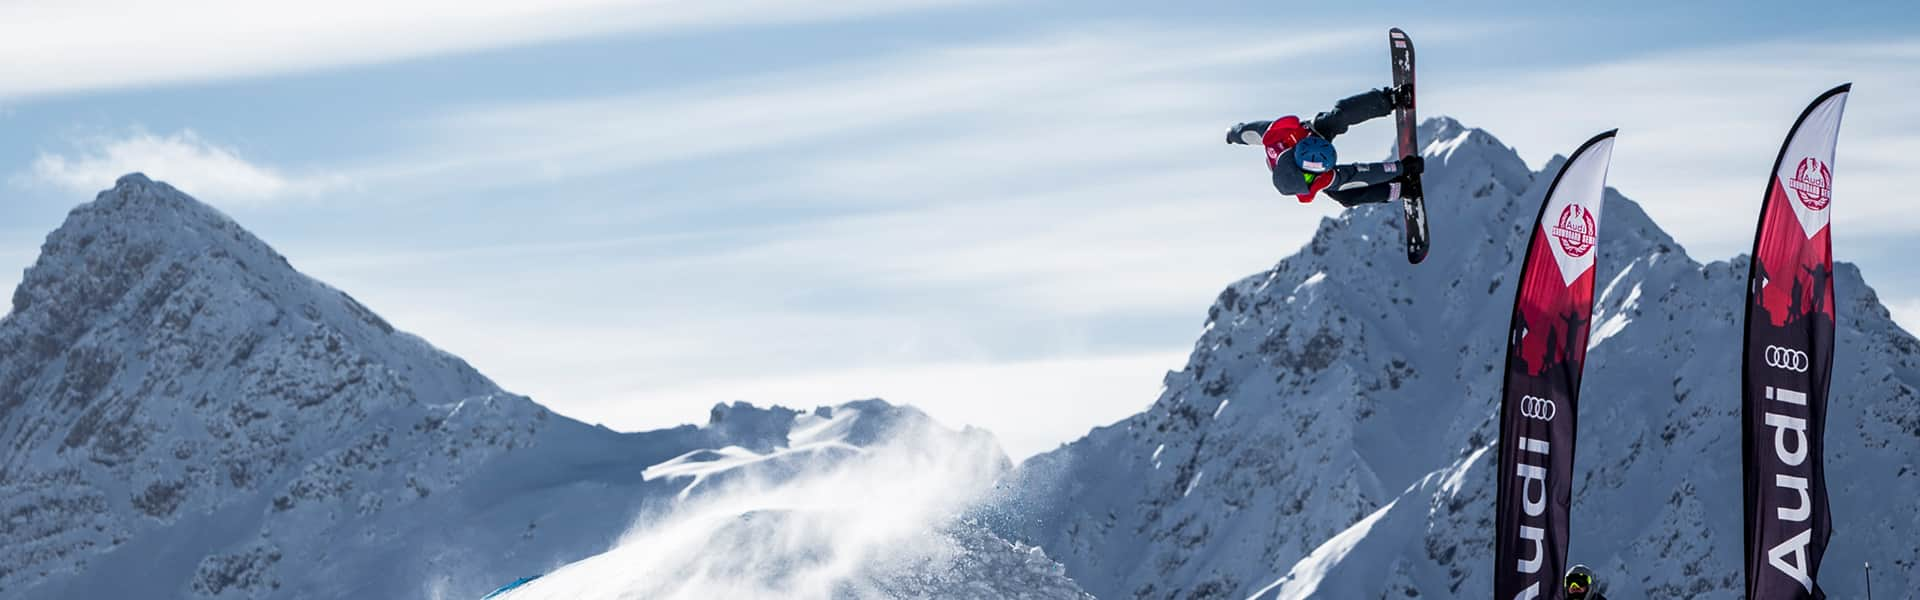 Audi Snowboard Series / Skicross Tour